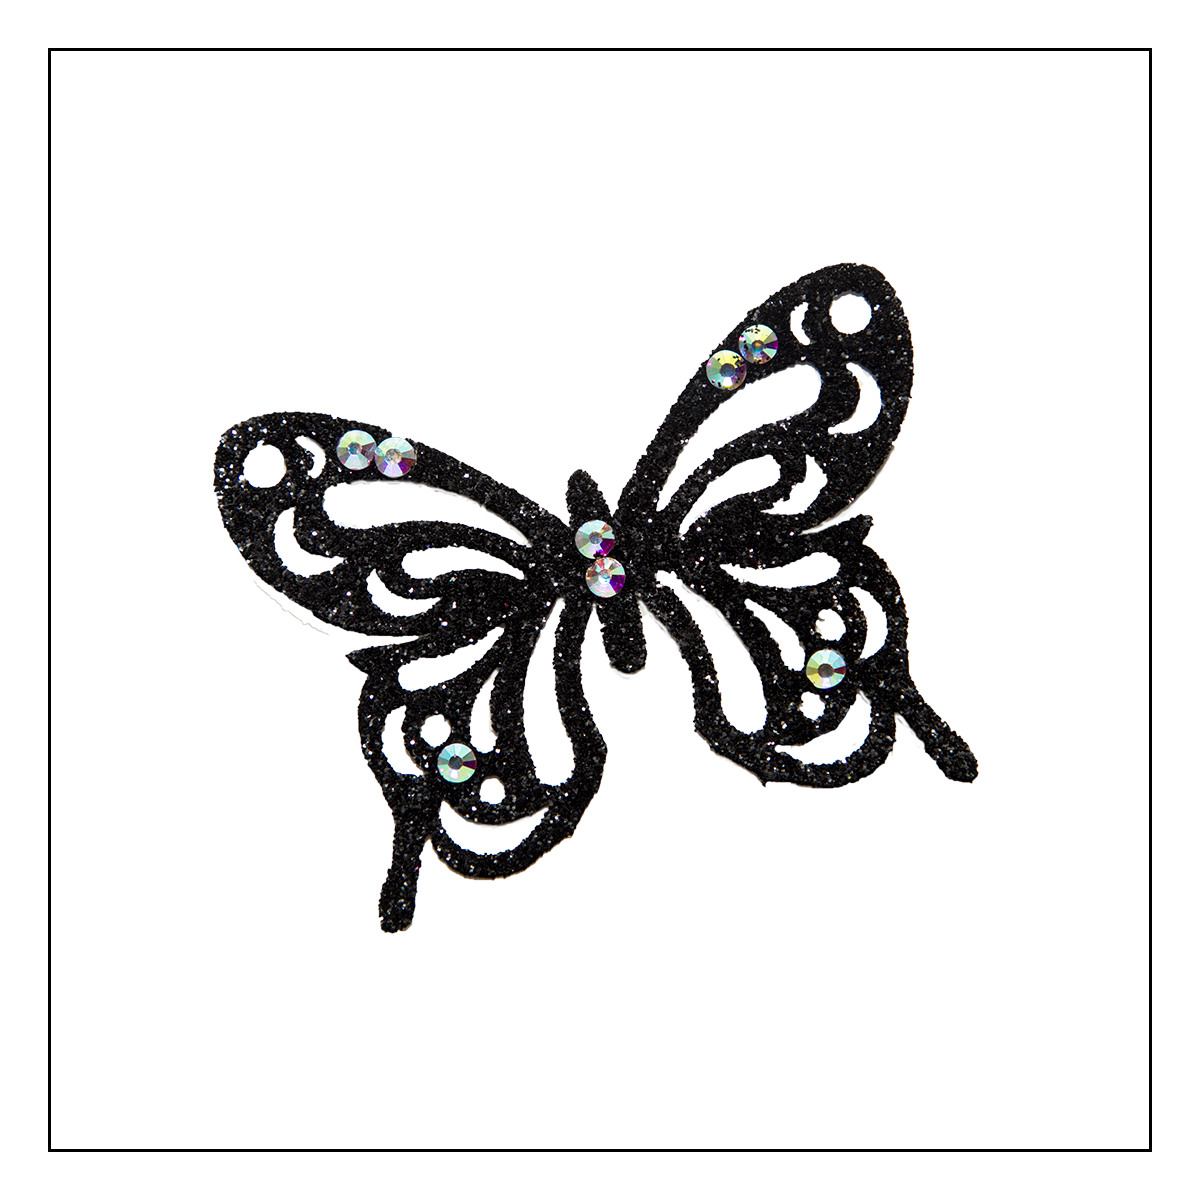 Skin Jewerly Butterfly Black 1 - 1 piece